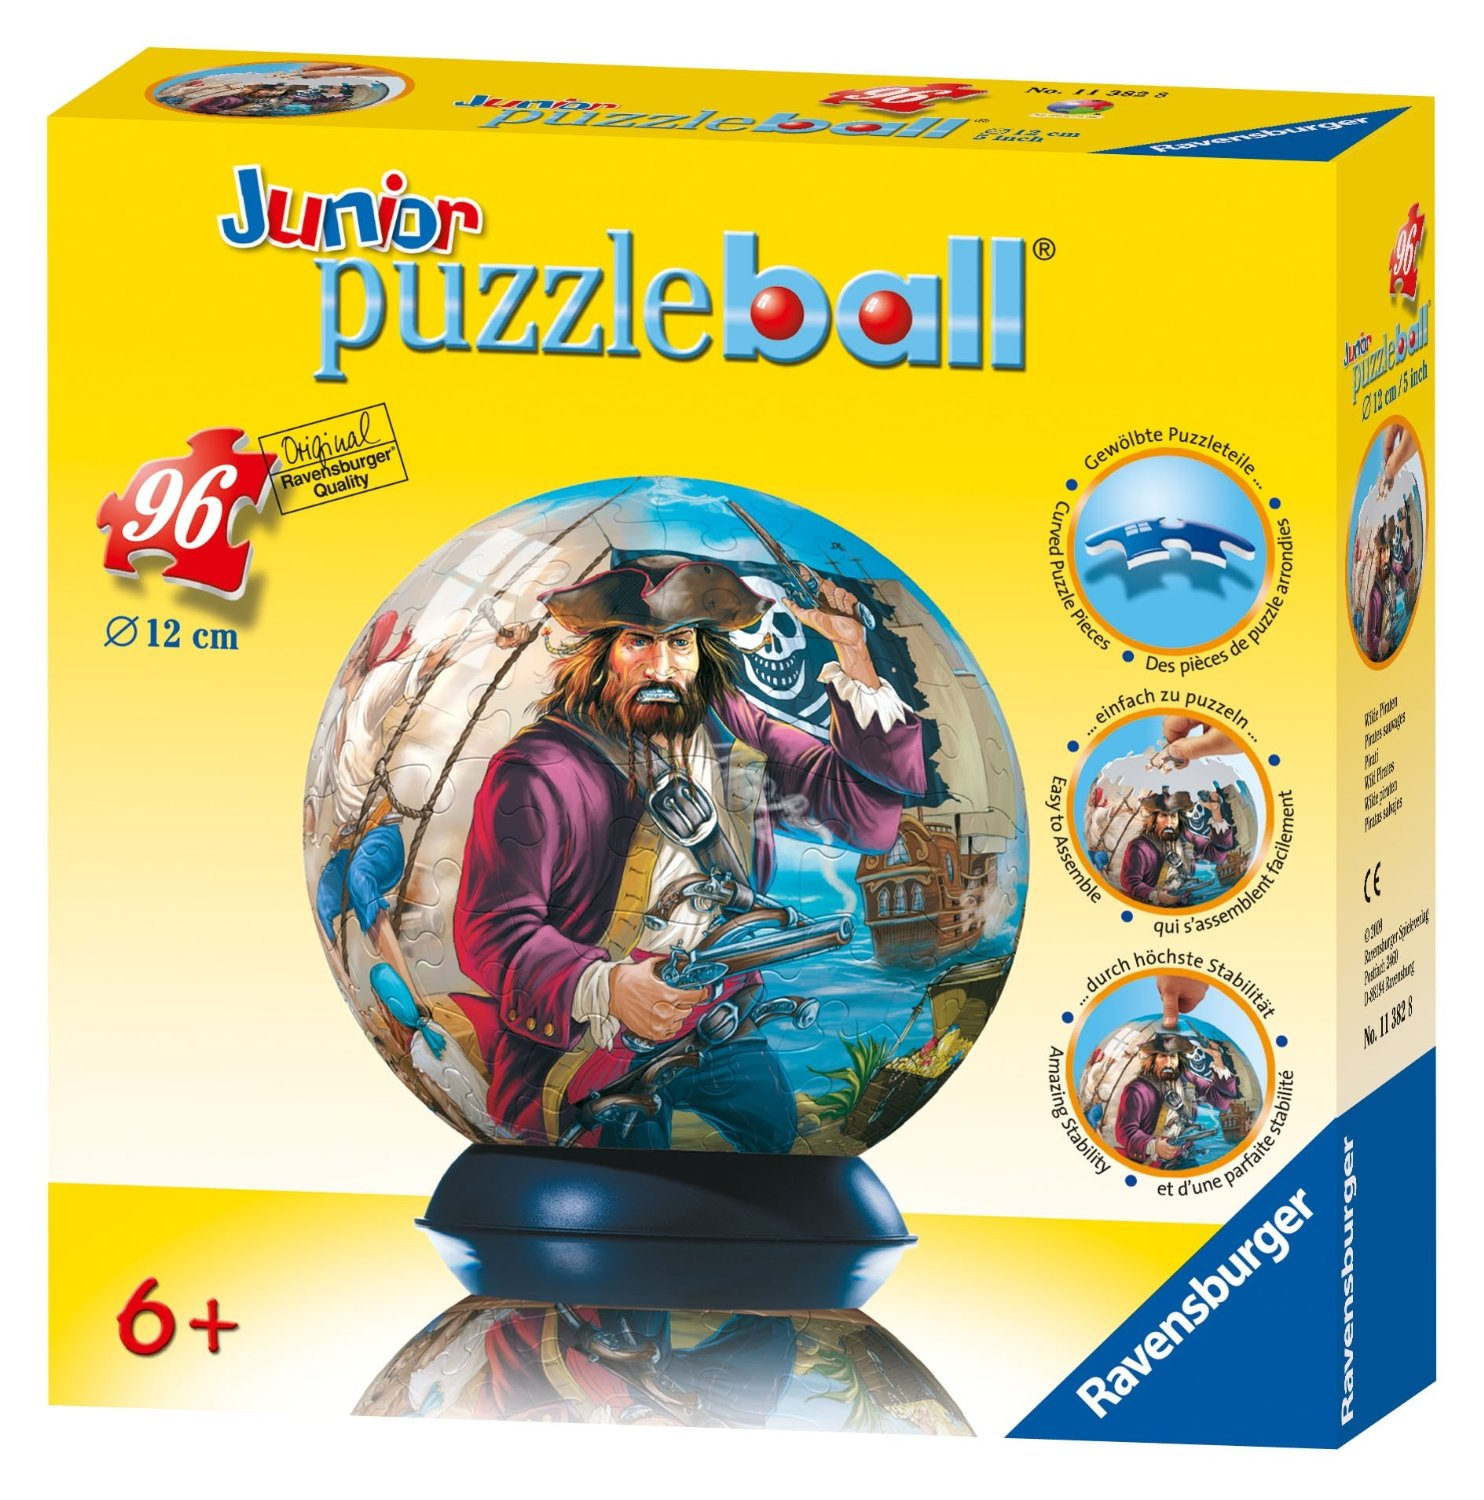 Jr PuzzleBall (Wild Pirates) - 96 pcs